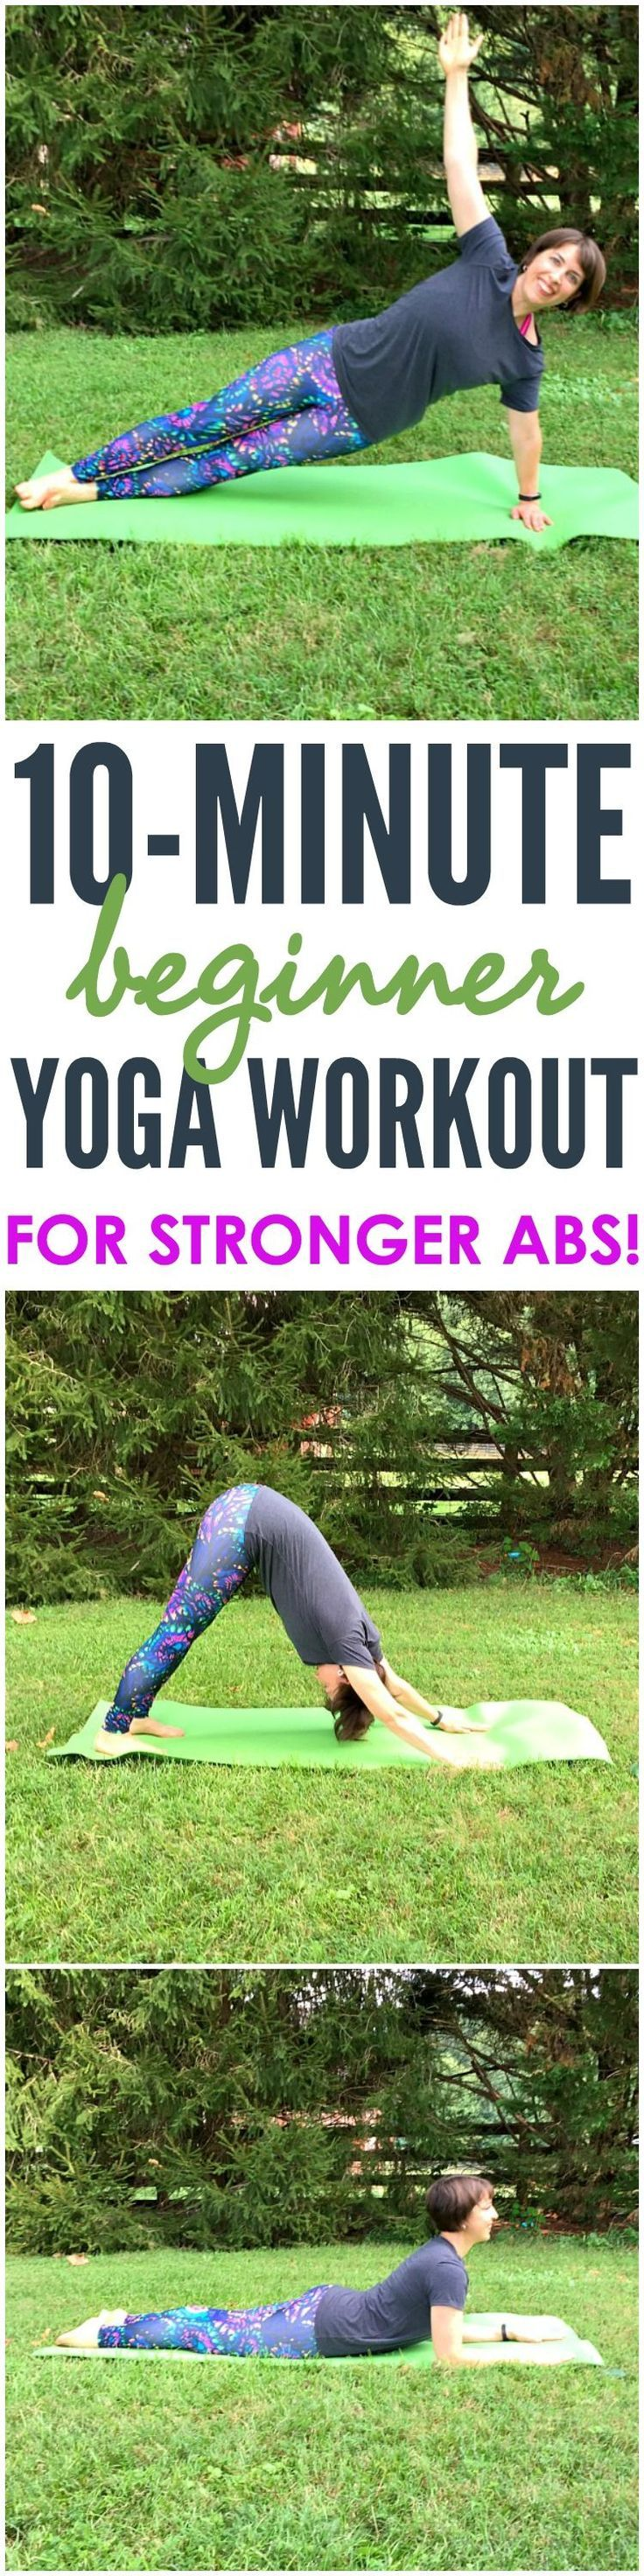 A 10 Minute Beginner Yoga Workout for Stronger Abs is a great way to relax…